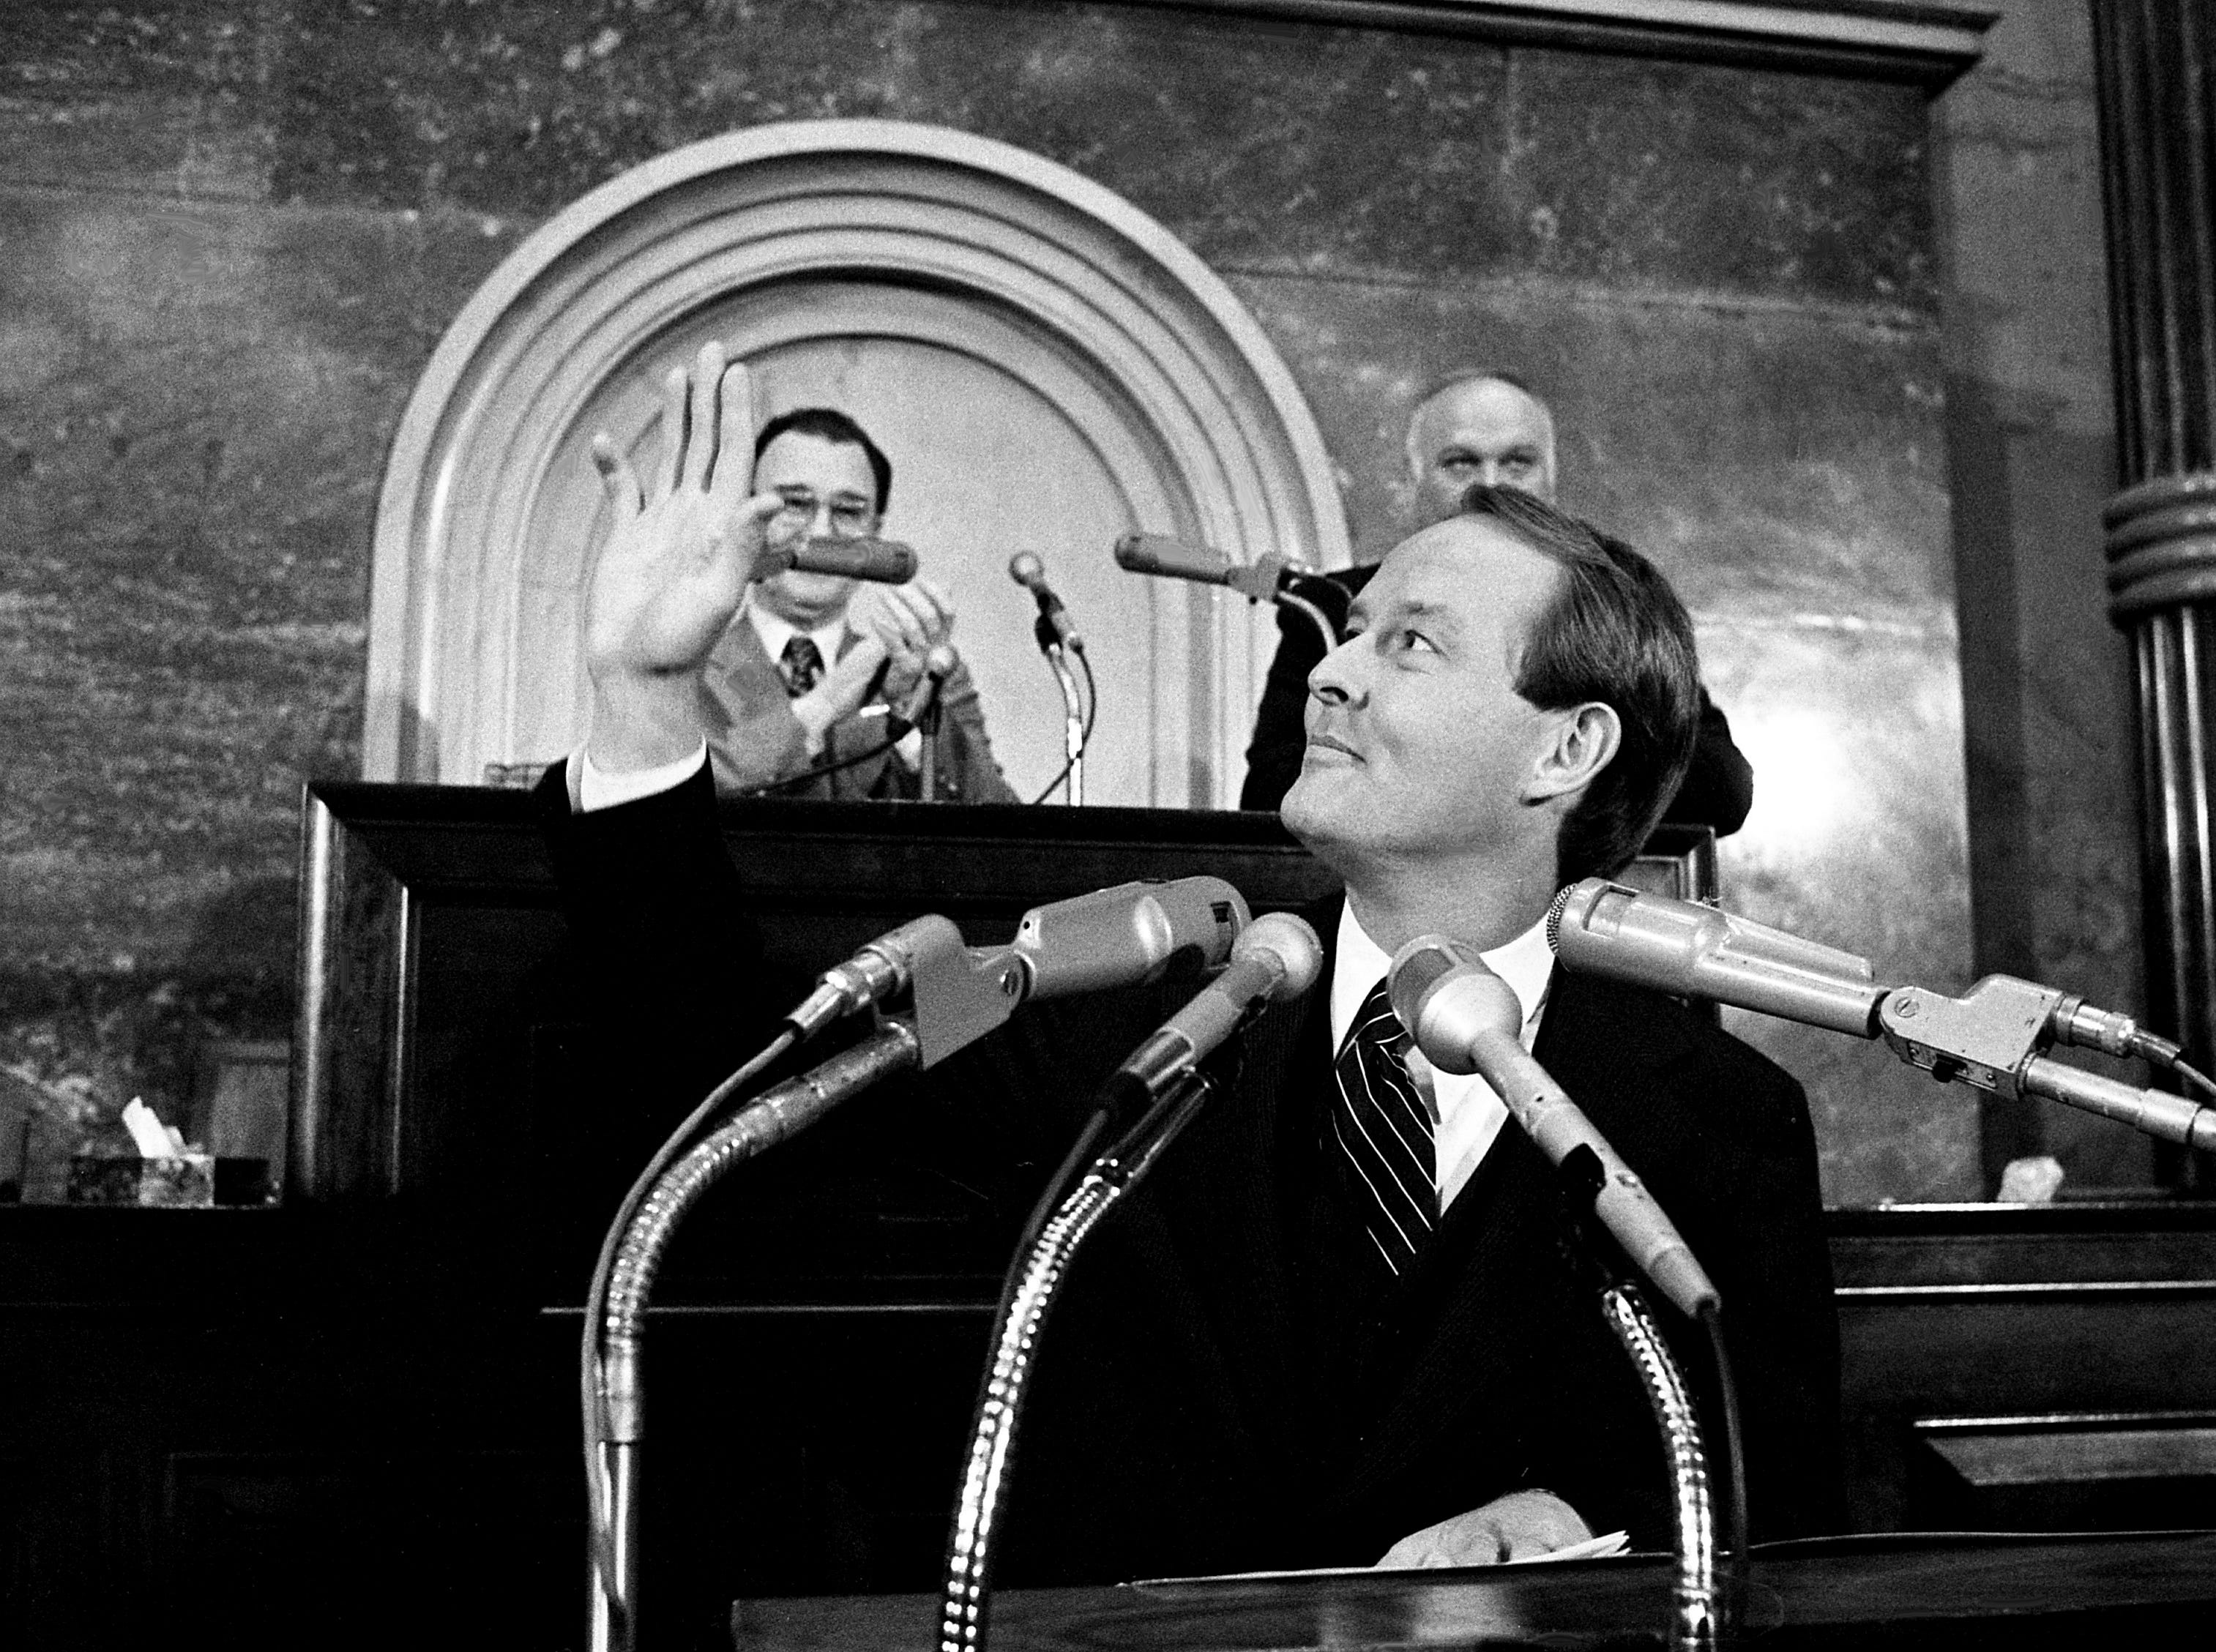 Gov. Lamar Alexander waves to the crowd before his budget address to the joint legislature at the state Capitol on Feb. 28, 1979. Looking on behind him are Lt. Gov. John Wilder and House Speaker Ned McWherter.